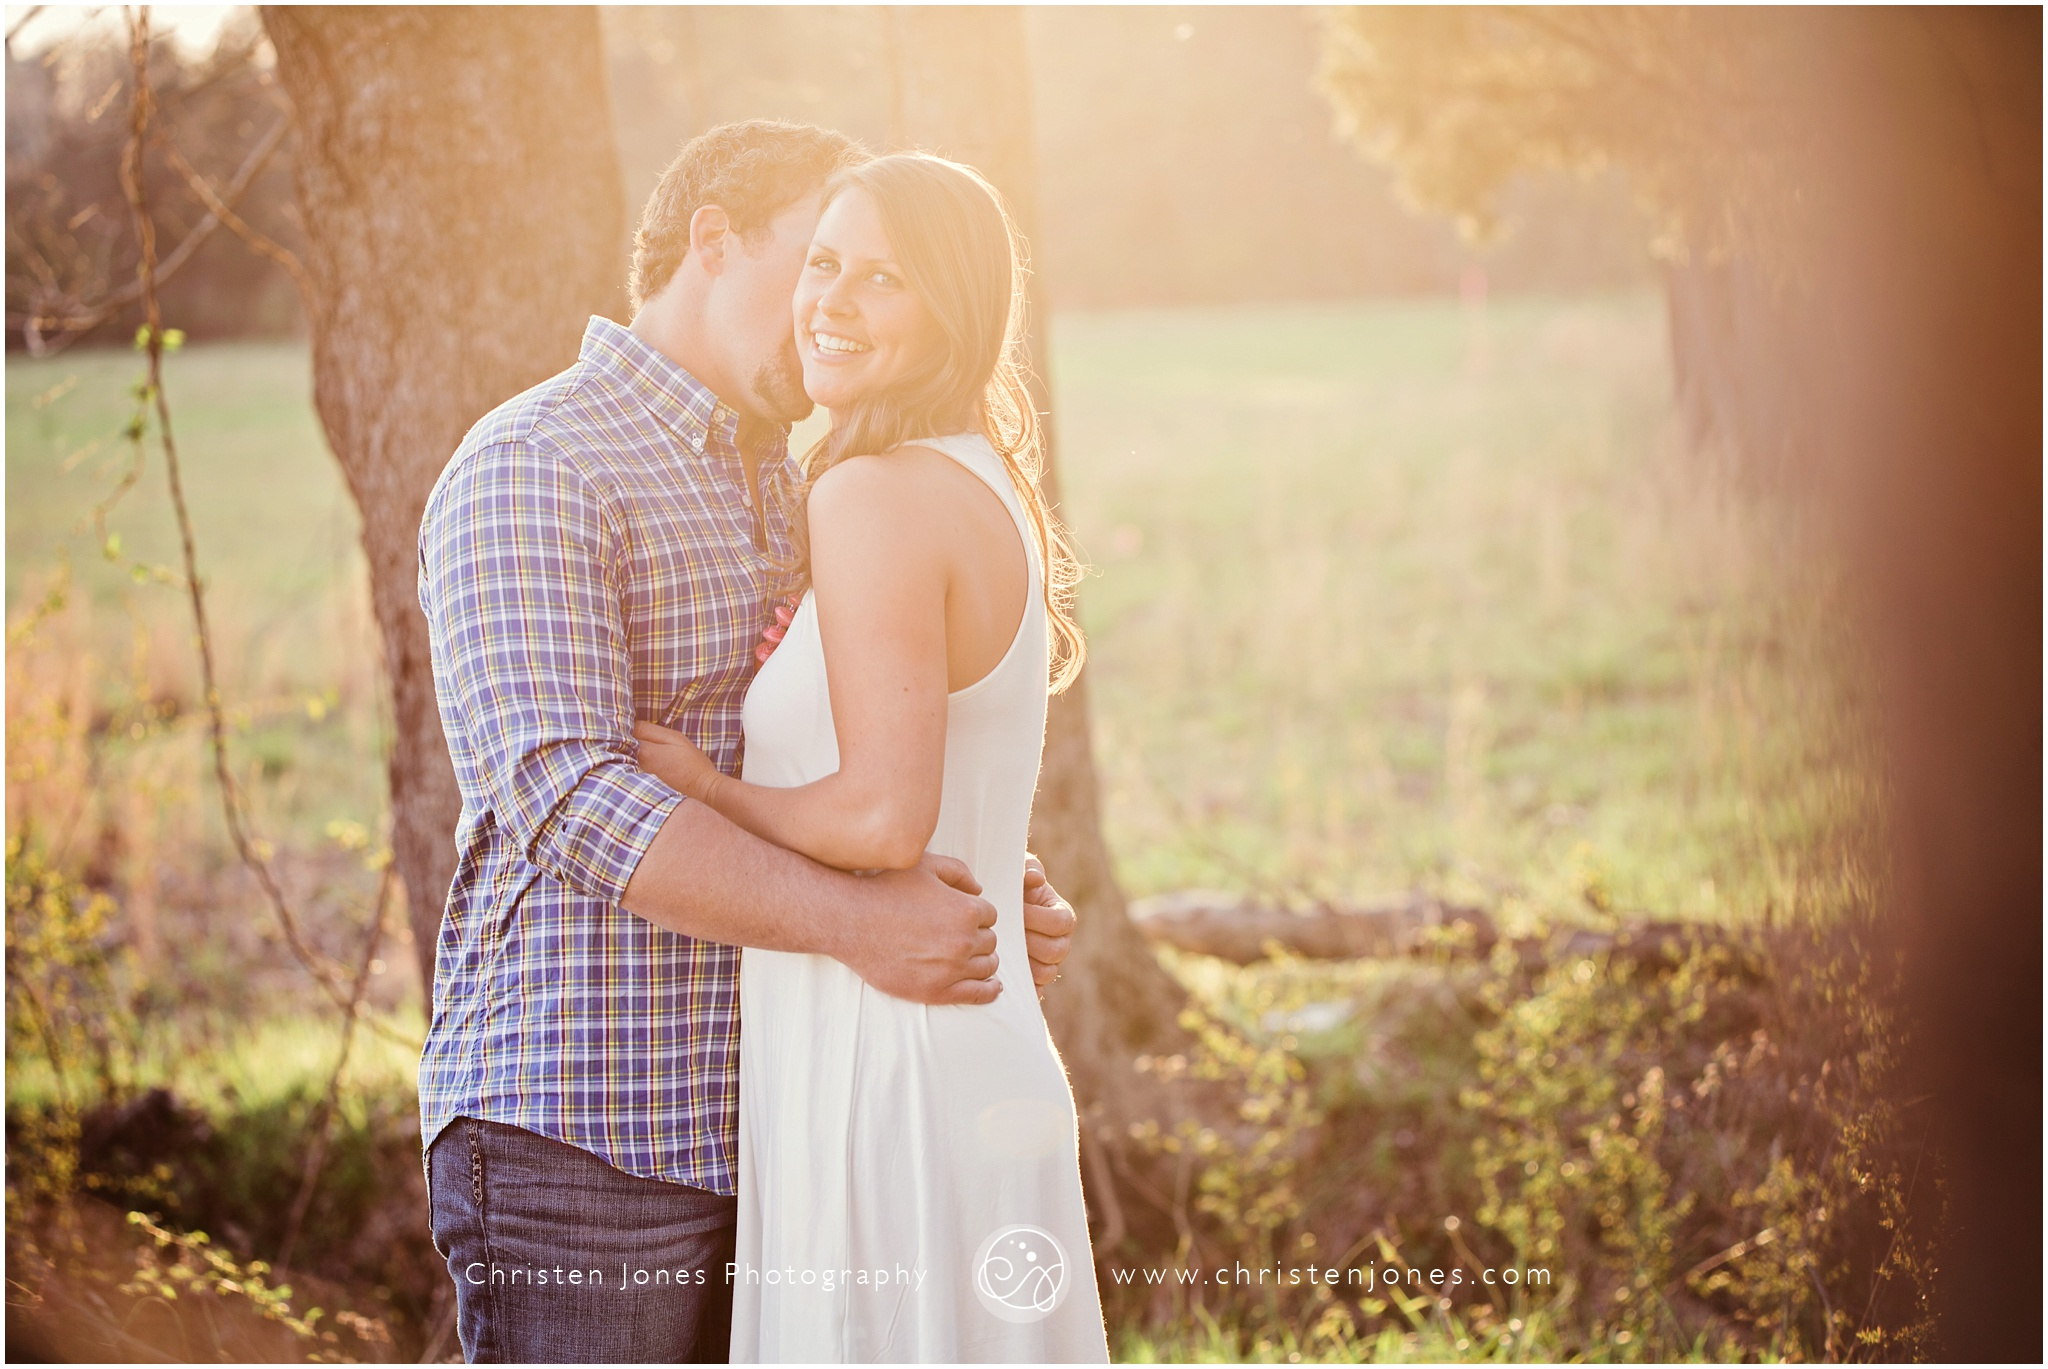 memphis engagement session, engaged, she said yes, i do, soon to be mrs, memphis wedding photographer, memphis wedding